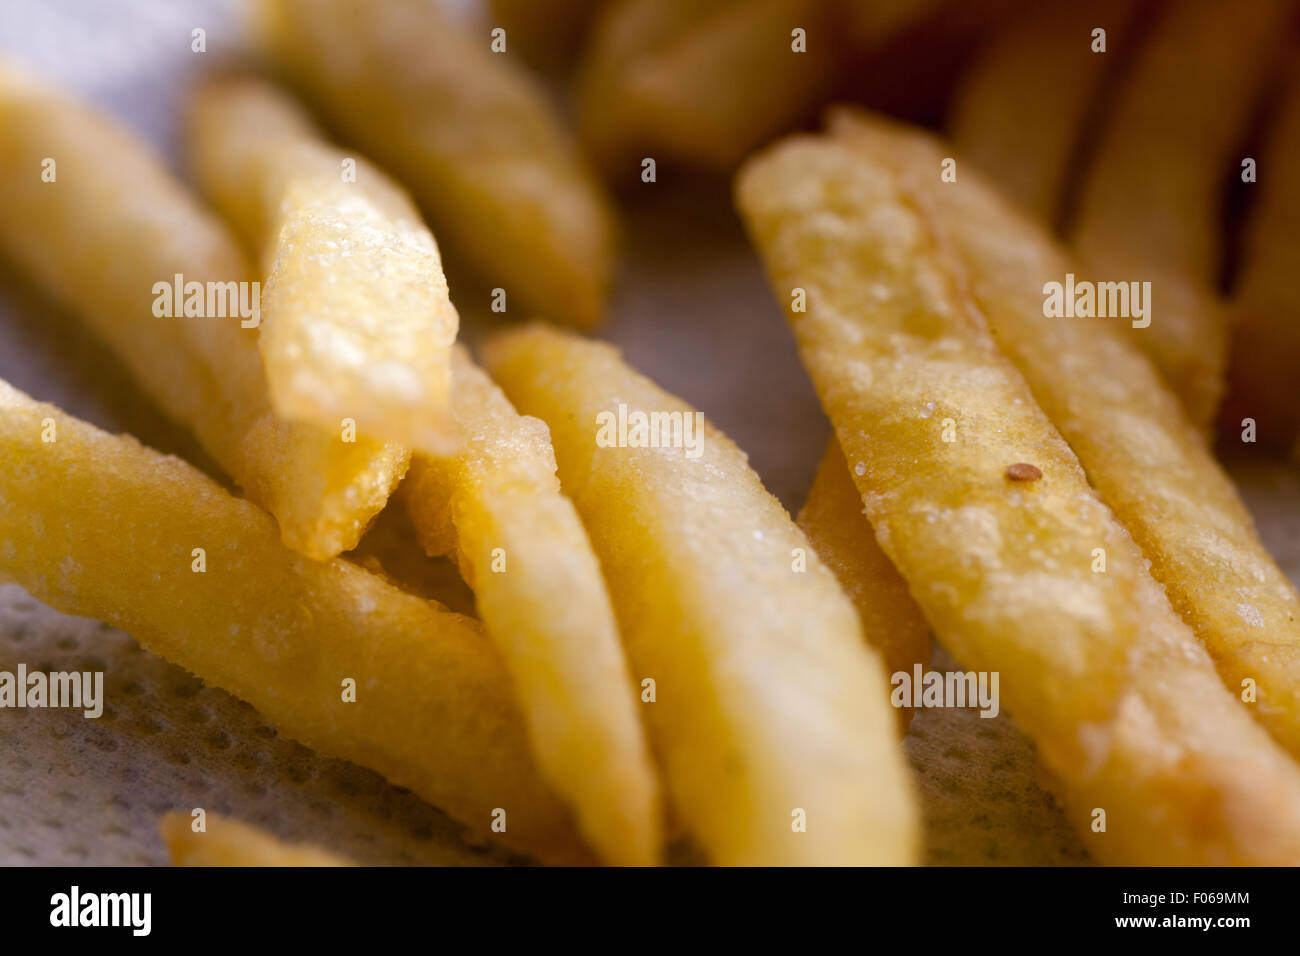 Closeup of the french fries - Stock Image